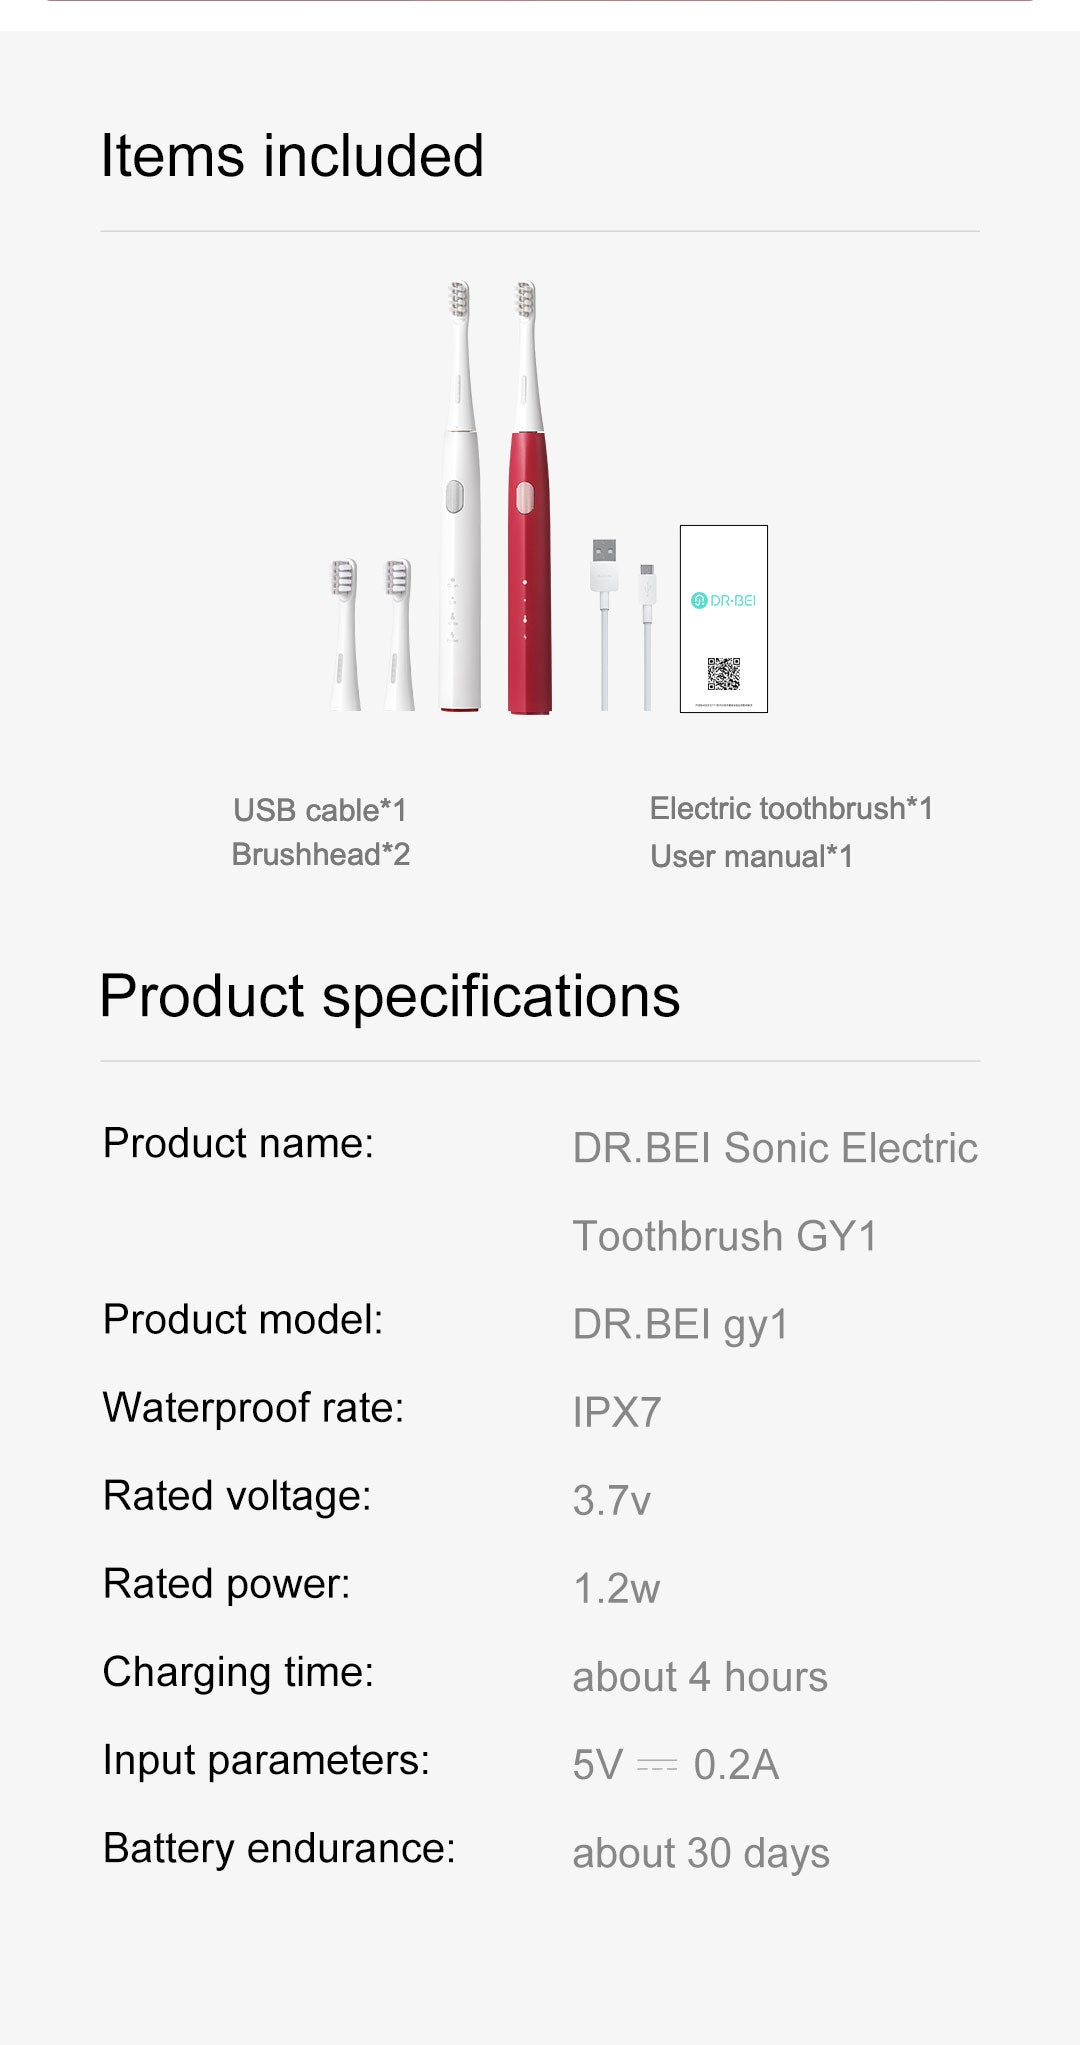 DR.BEI GY1 Sonic Electric Toothbrush Xiaomi Youpin DR·BEI GY1 Ultrasonic Electric Toothbrush 3 Modes 2 Mins Timer Rechargeable Whitening IPX7 Waterproof ToothBrush for Adults